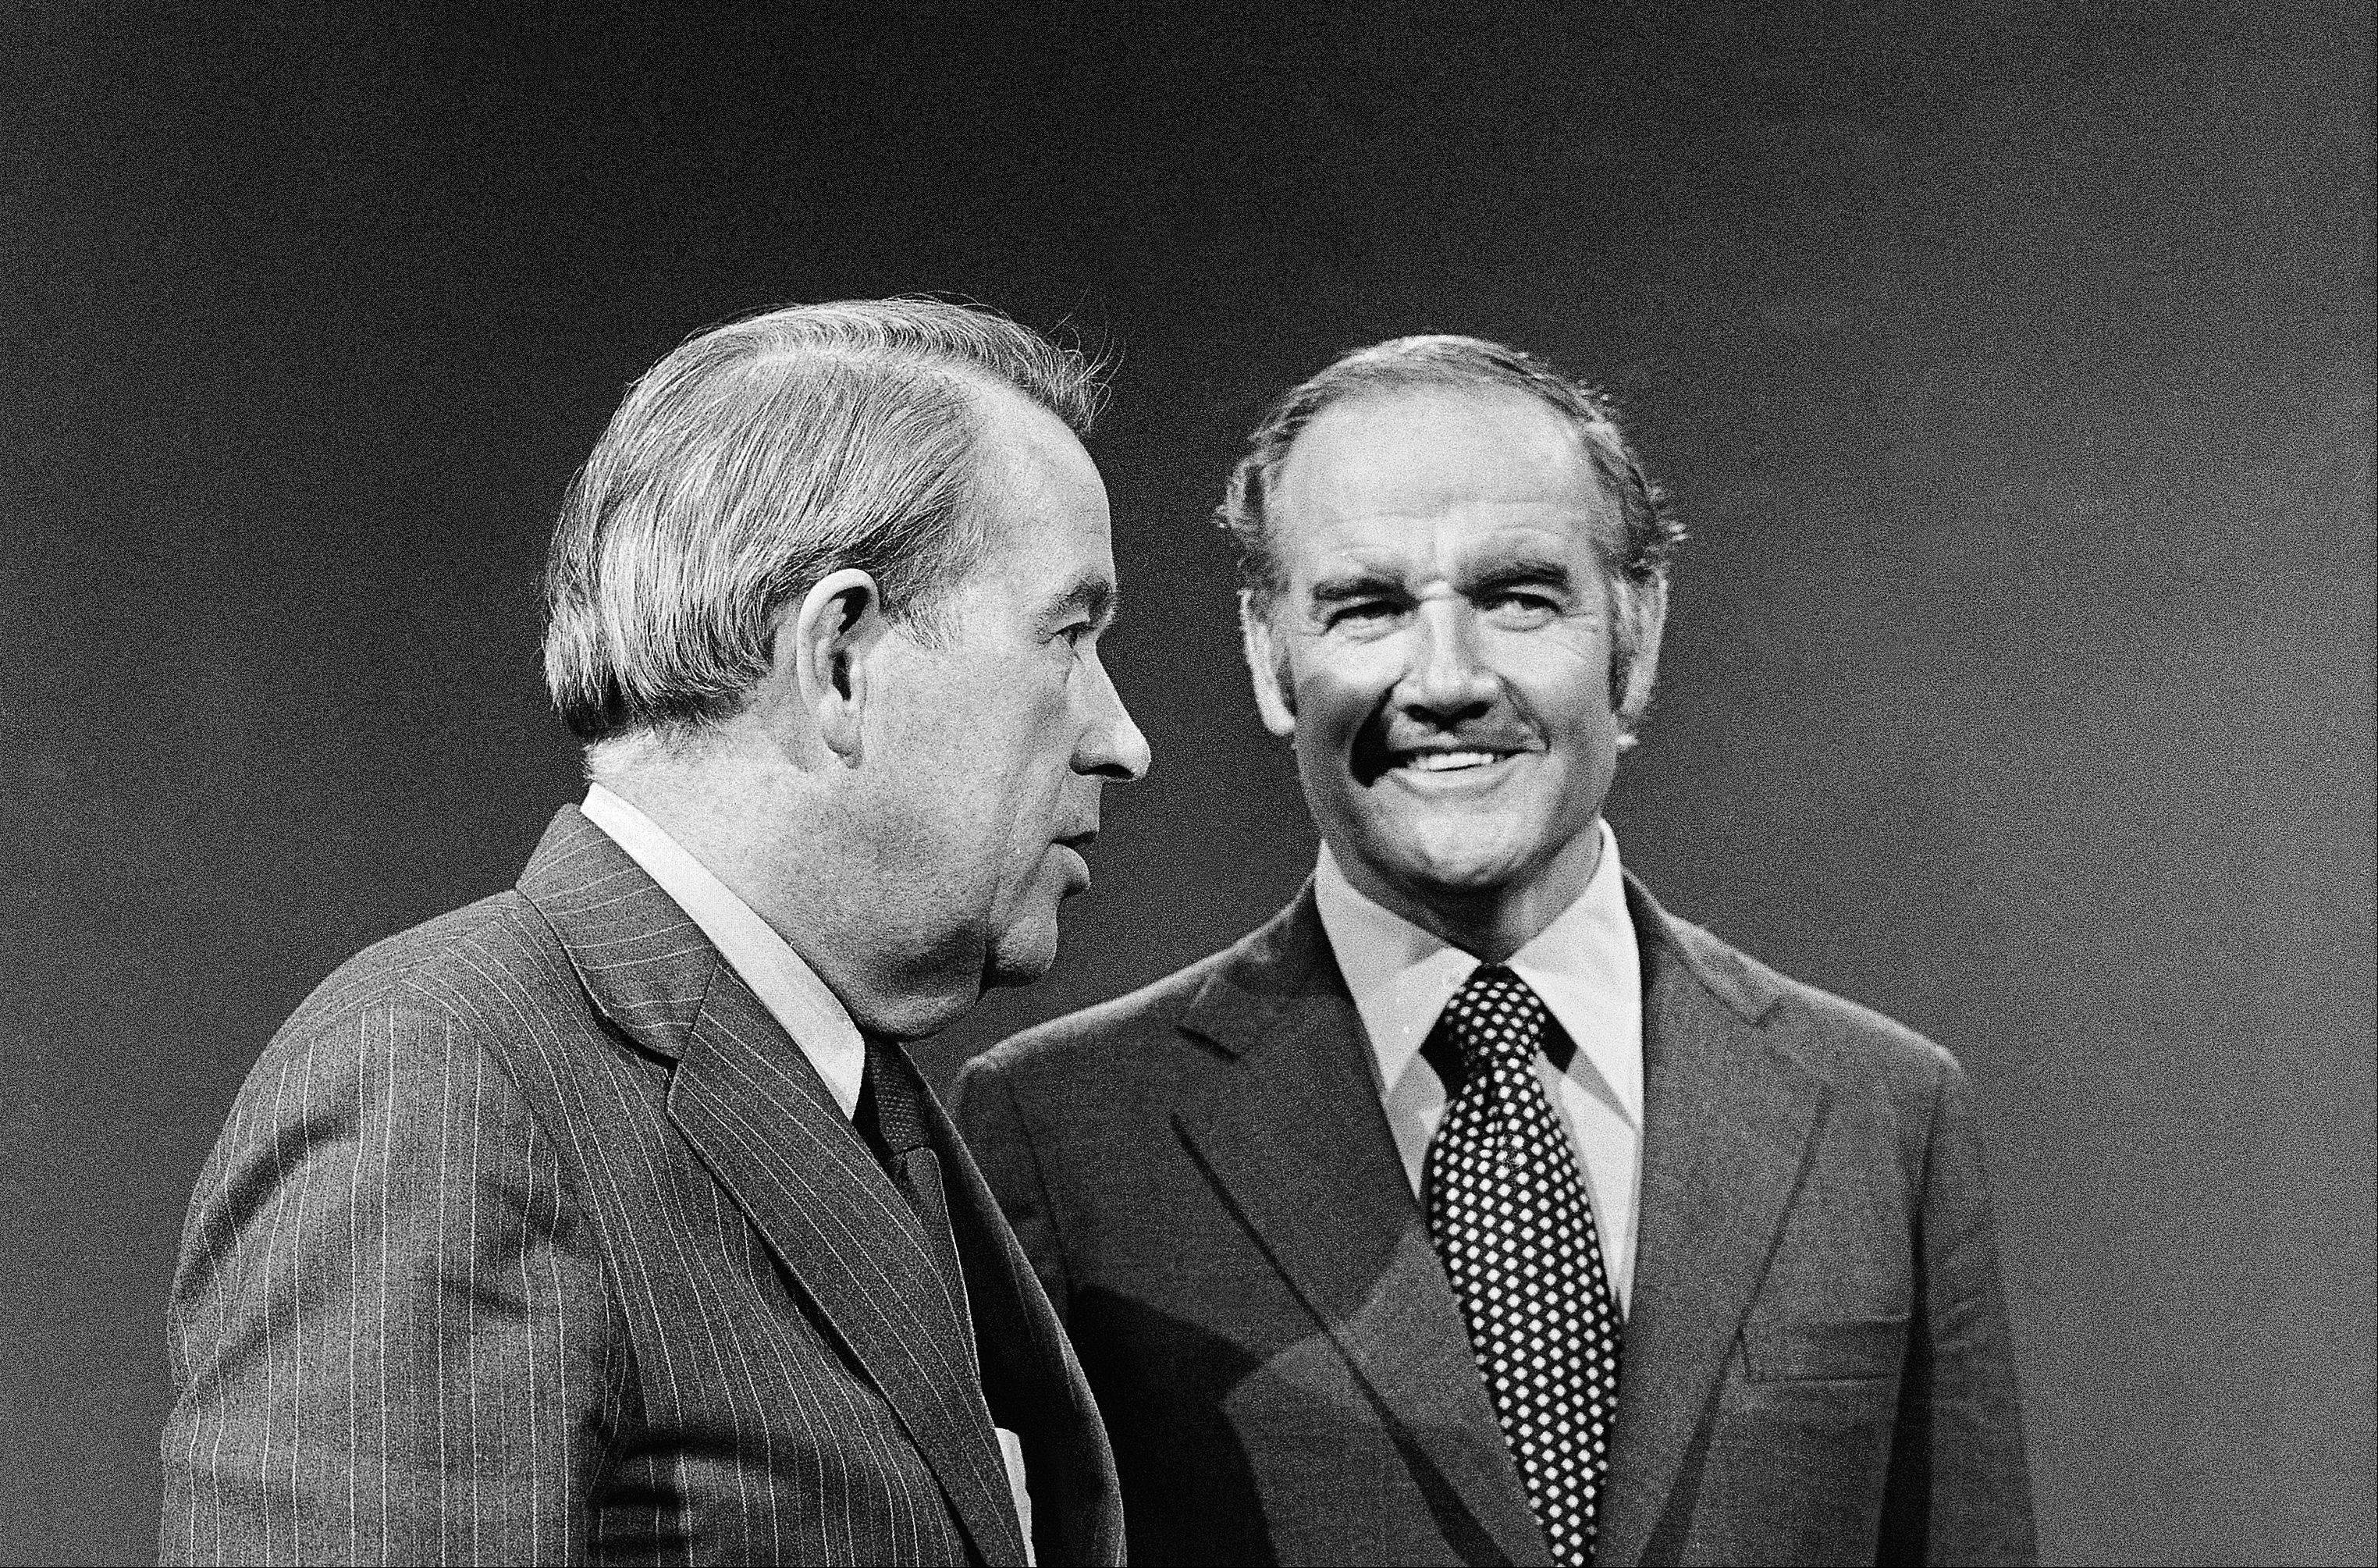 Washington's Sen. Henry M. Jackson, left, talks with Democratic presidential candidate Sen. George McGovern in Seattle, Saturday, Oct. 30, 1972. They appeared at a McGovern telethon and rally. It was McGovern�s fourth visit to Seattle, but the first time Jackson personally joined McGovern.